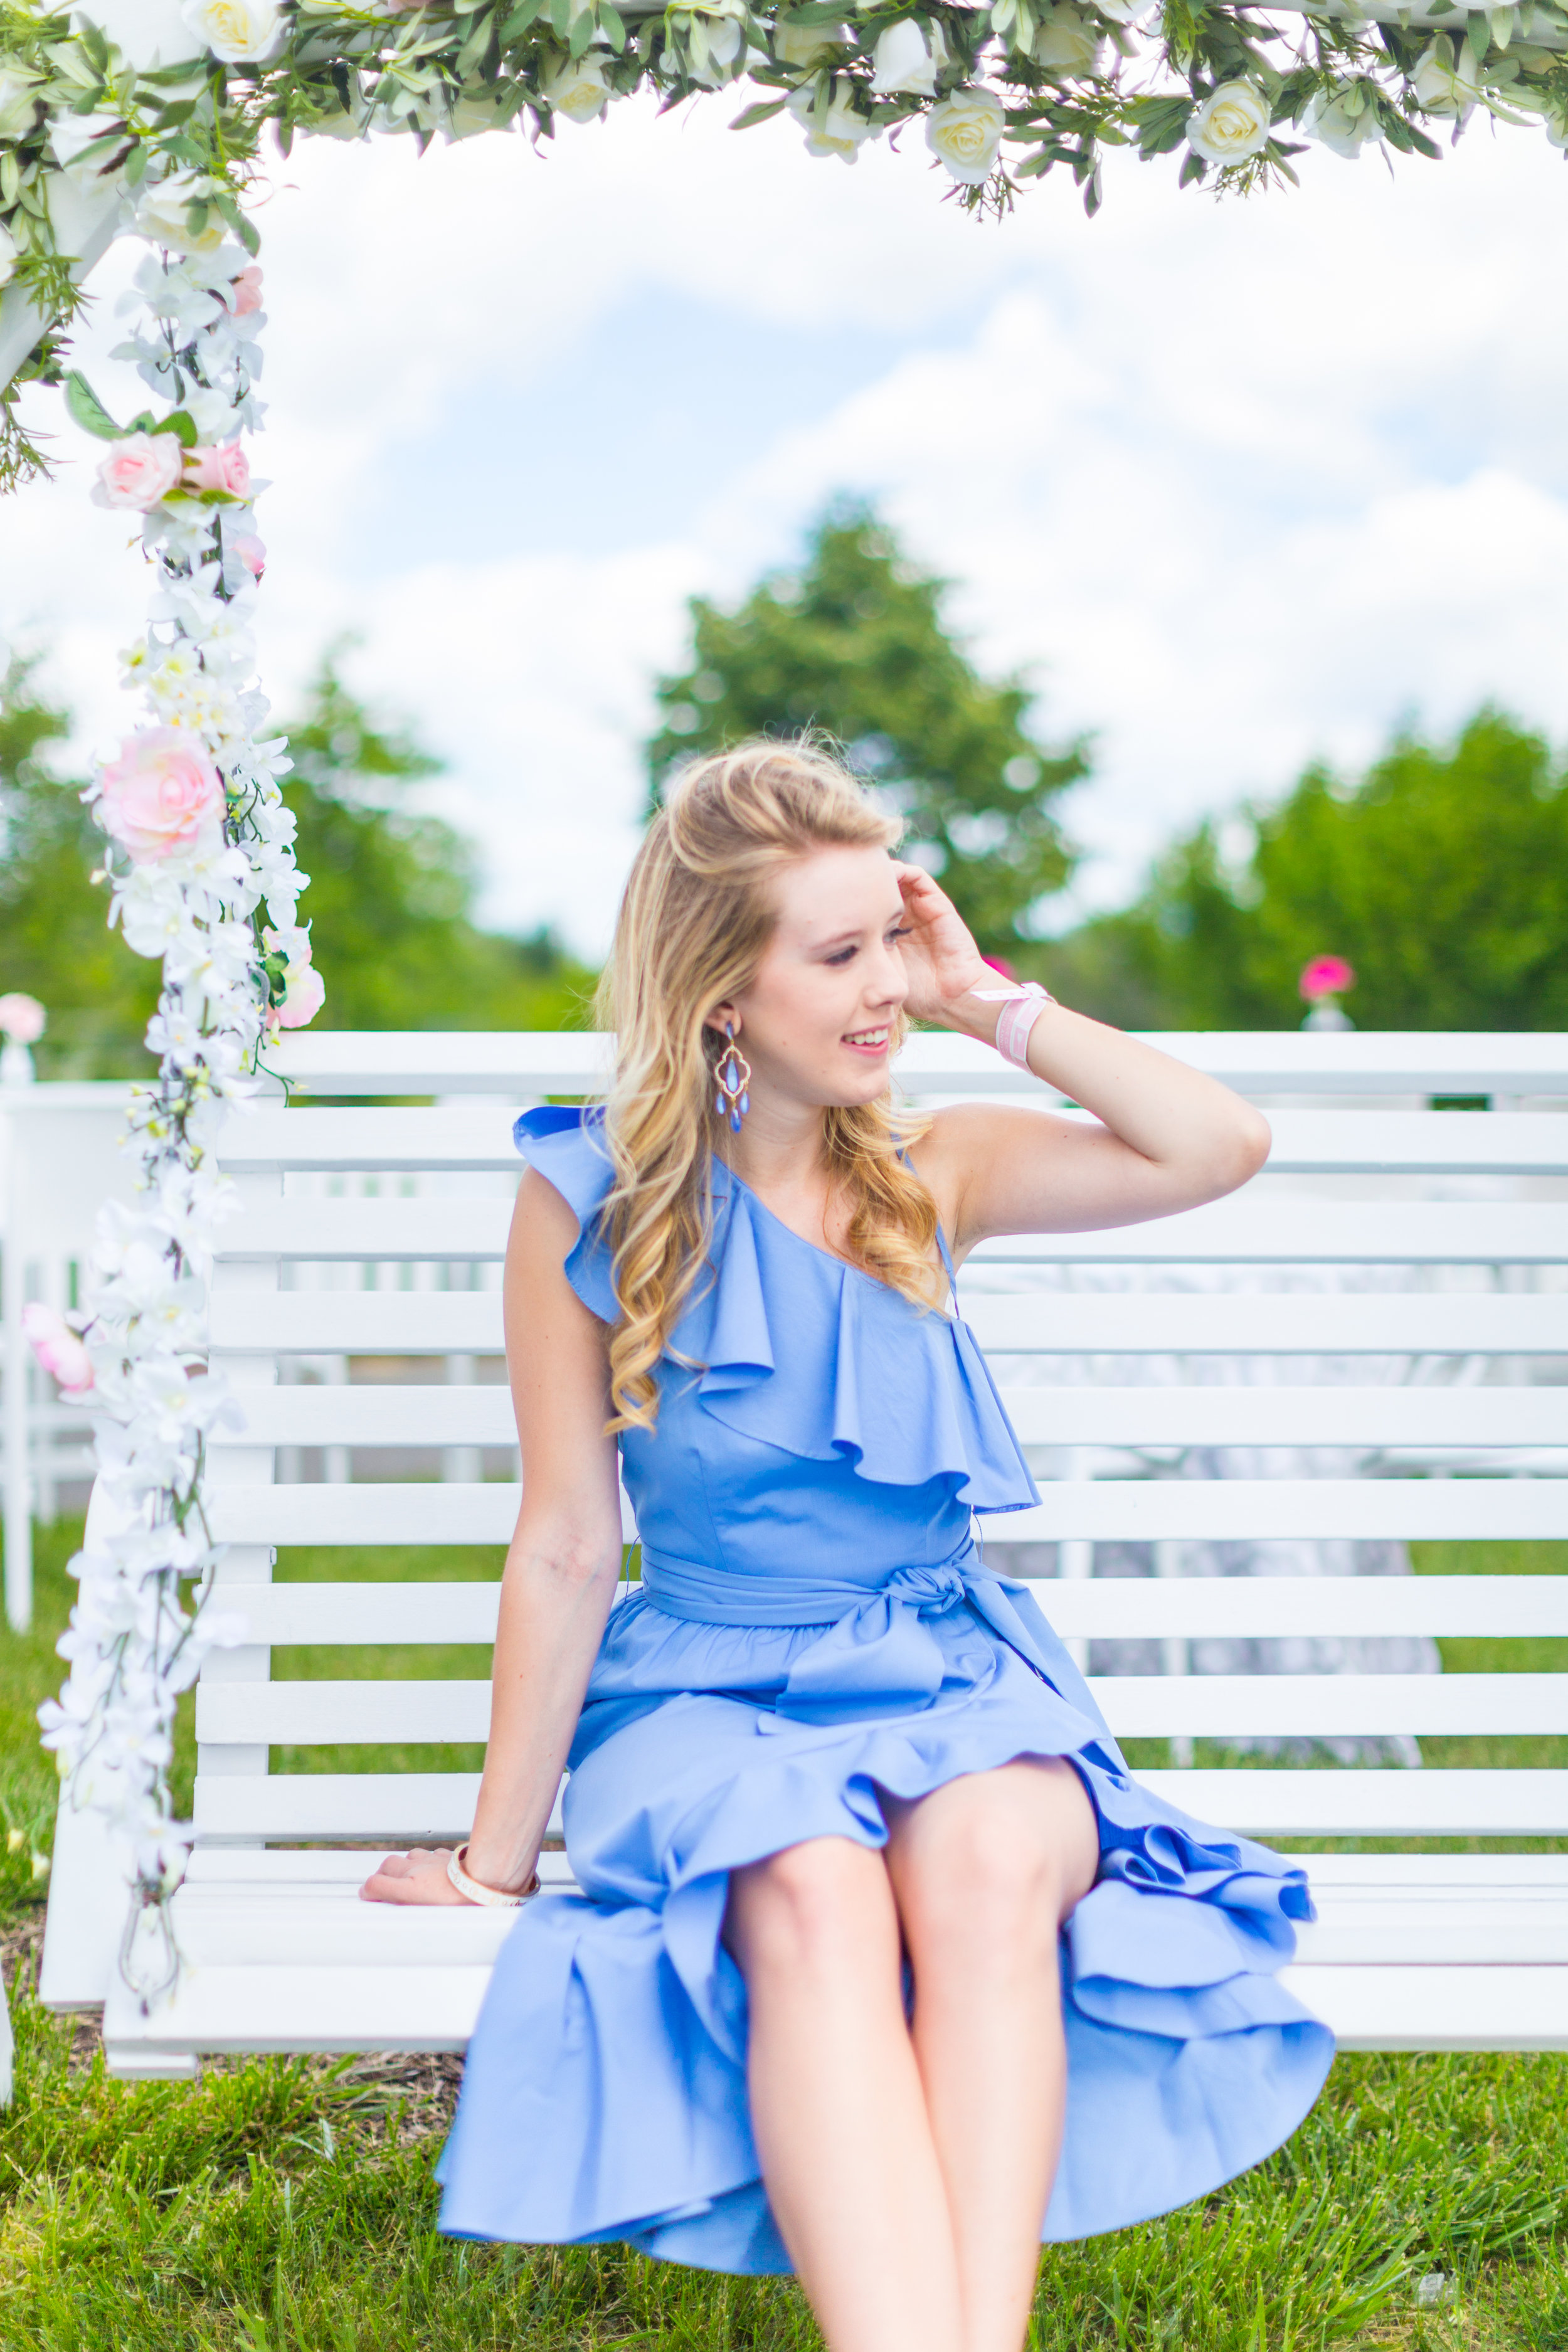 Veuve Clicquot Polo Classic NYC Summer Style Ruffled One Shoulder Blue Dress-18.jpg